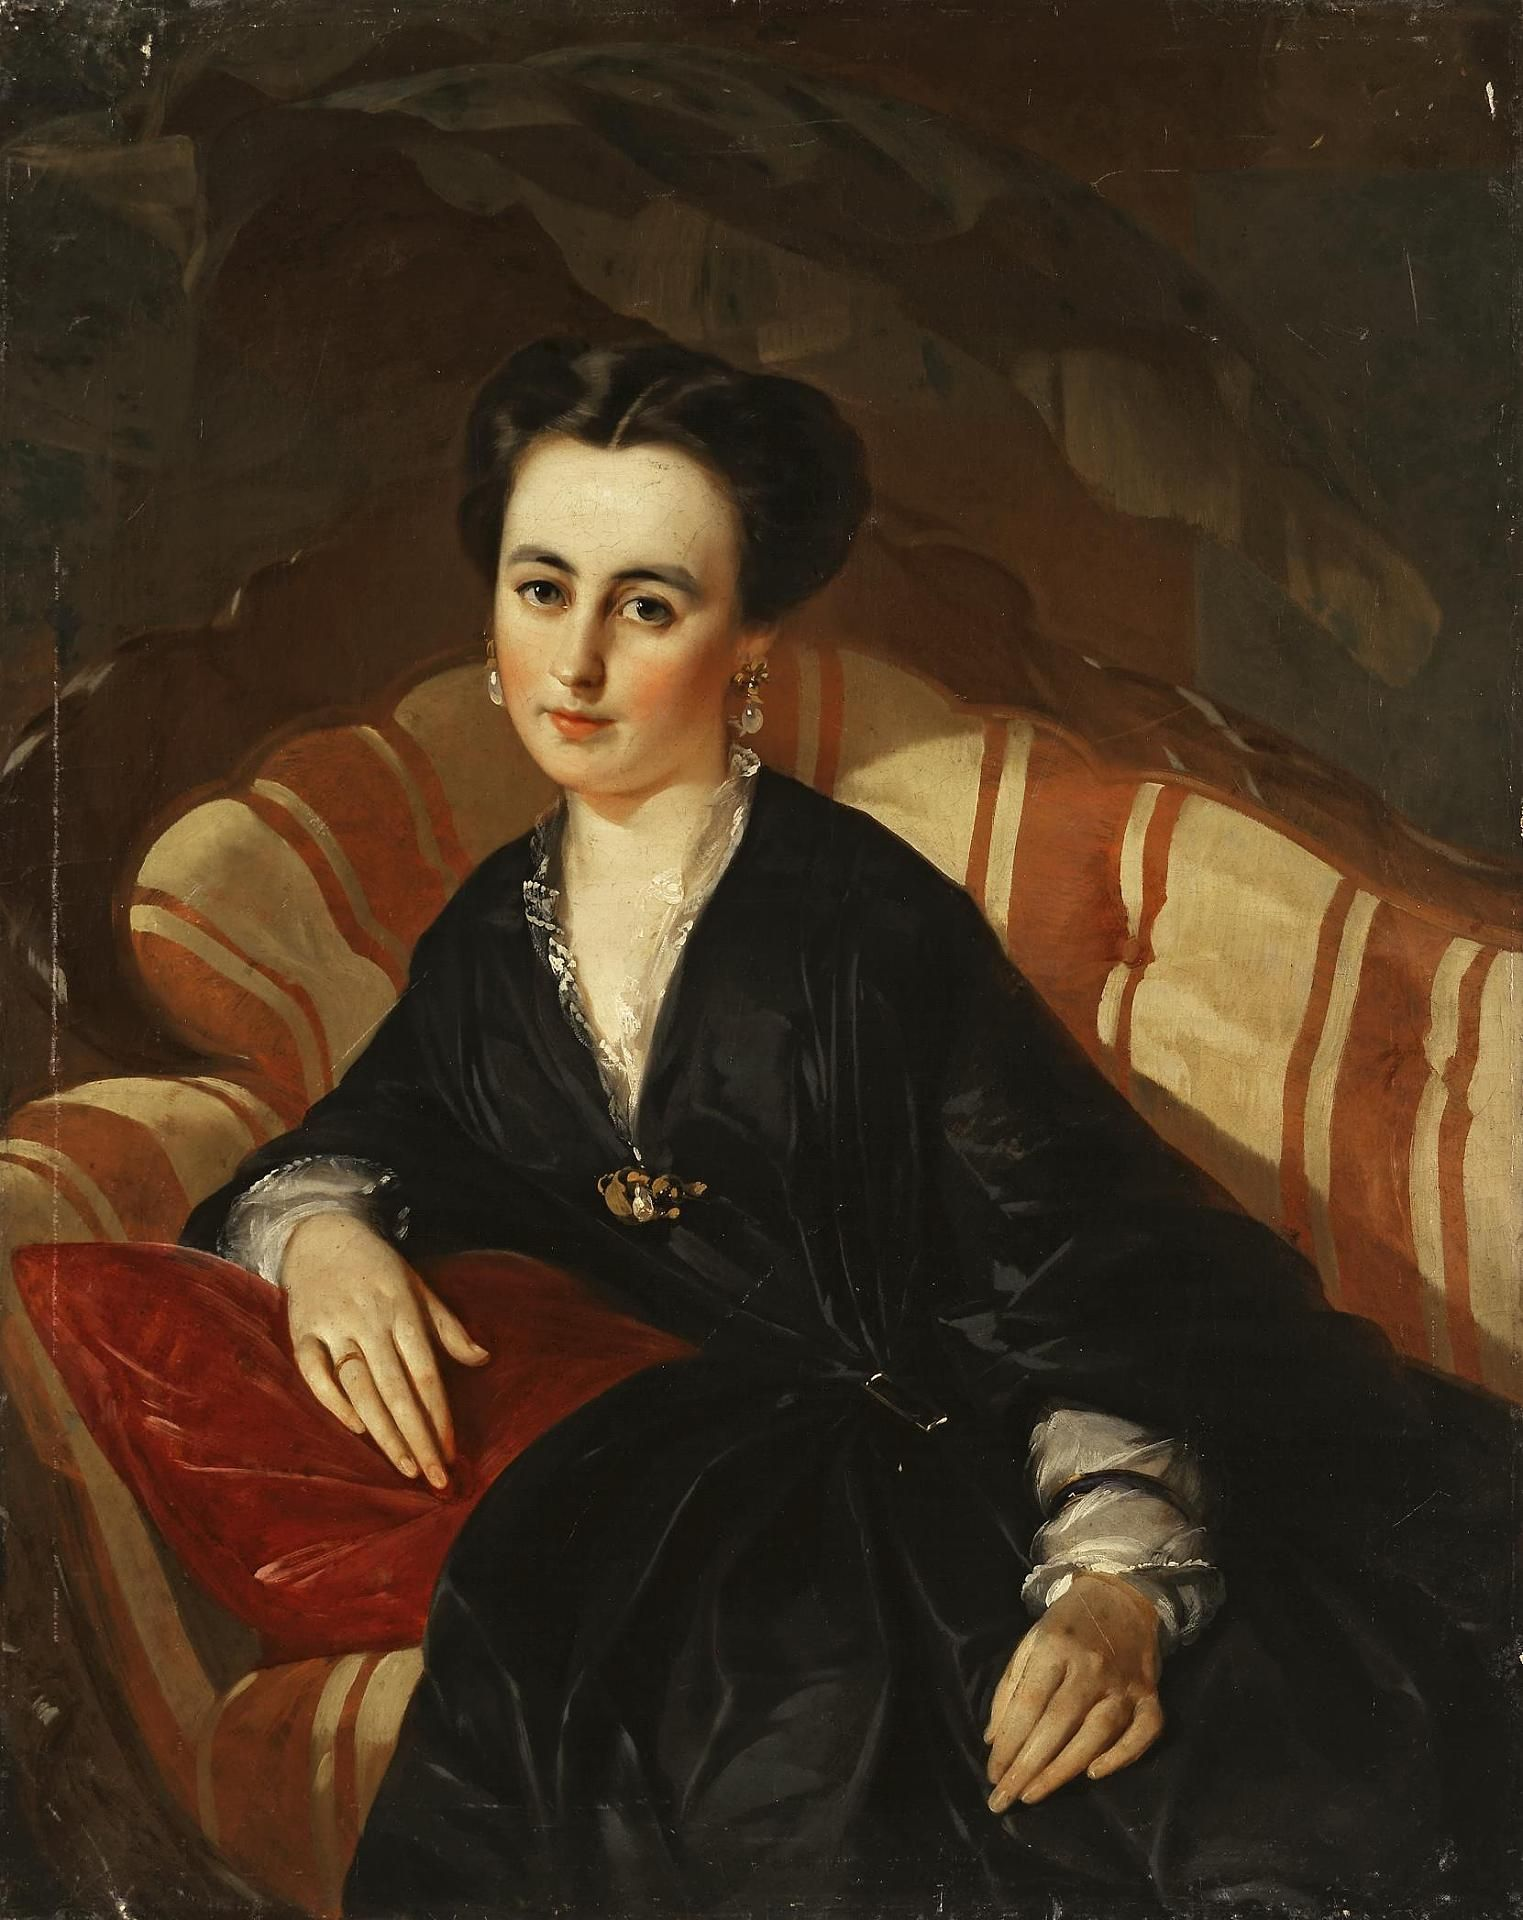 Portrait of an Unknown Woman | Ivan Kuzmich Makarov | Russia | late 1840s-early 1850s | oil on canvas | Hermitage | Inventory #: ЭРЖ-1317